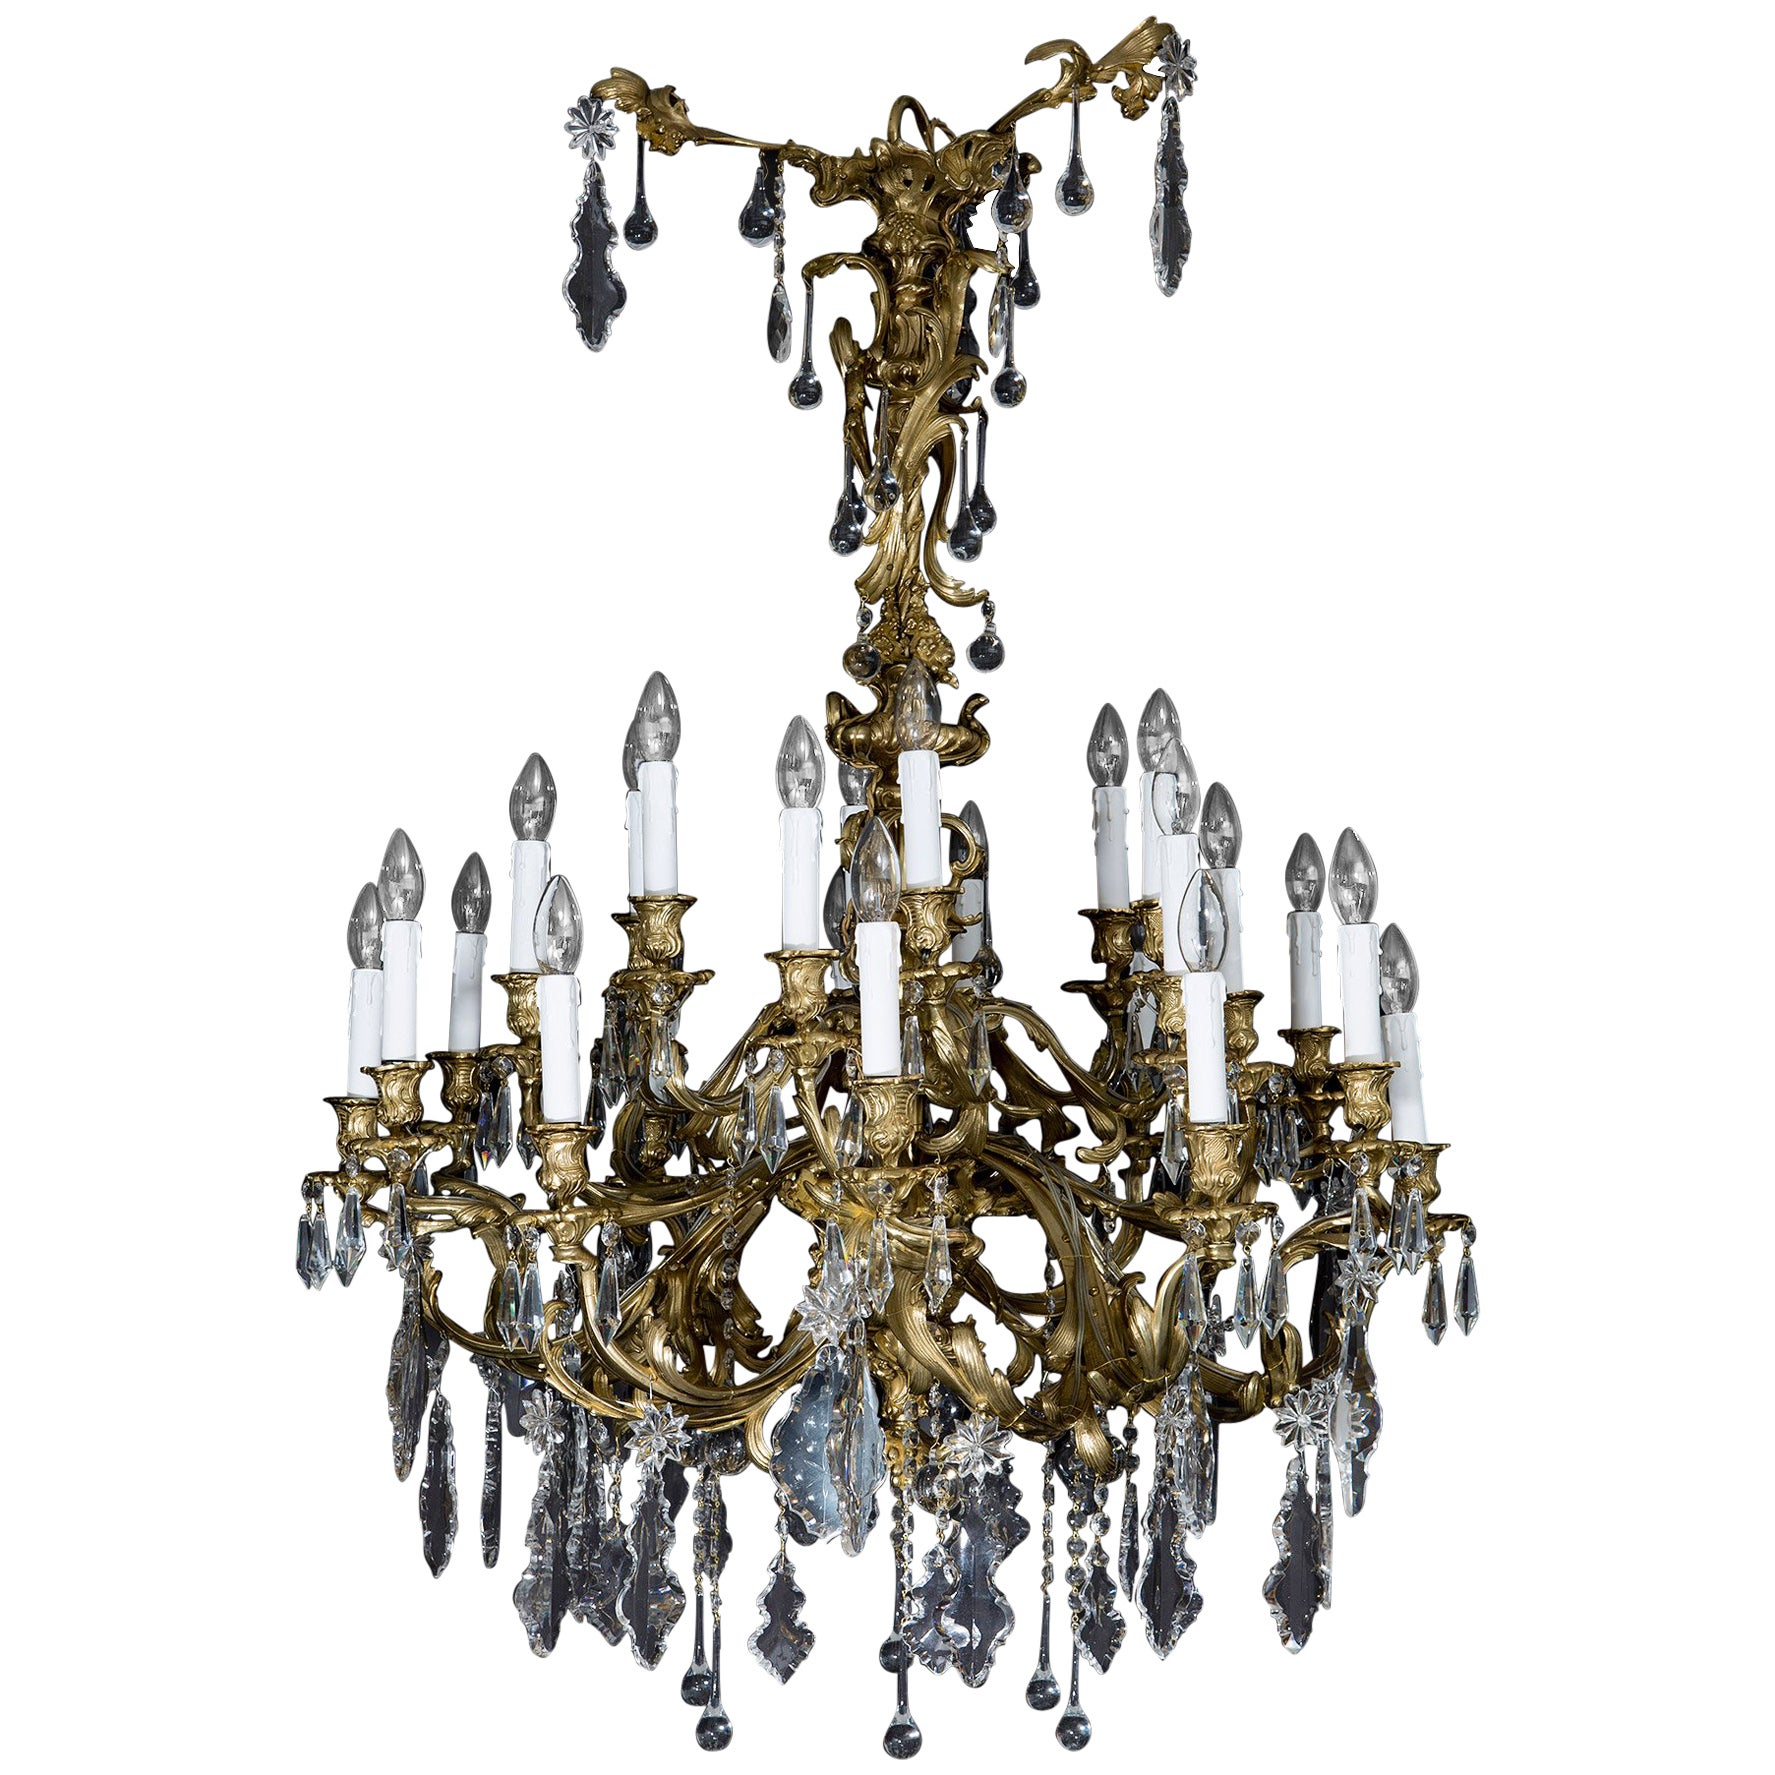 Antique French Chandelier in the Rococo Style, of Gilt Bronze and Cut-Glass